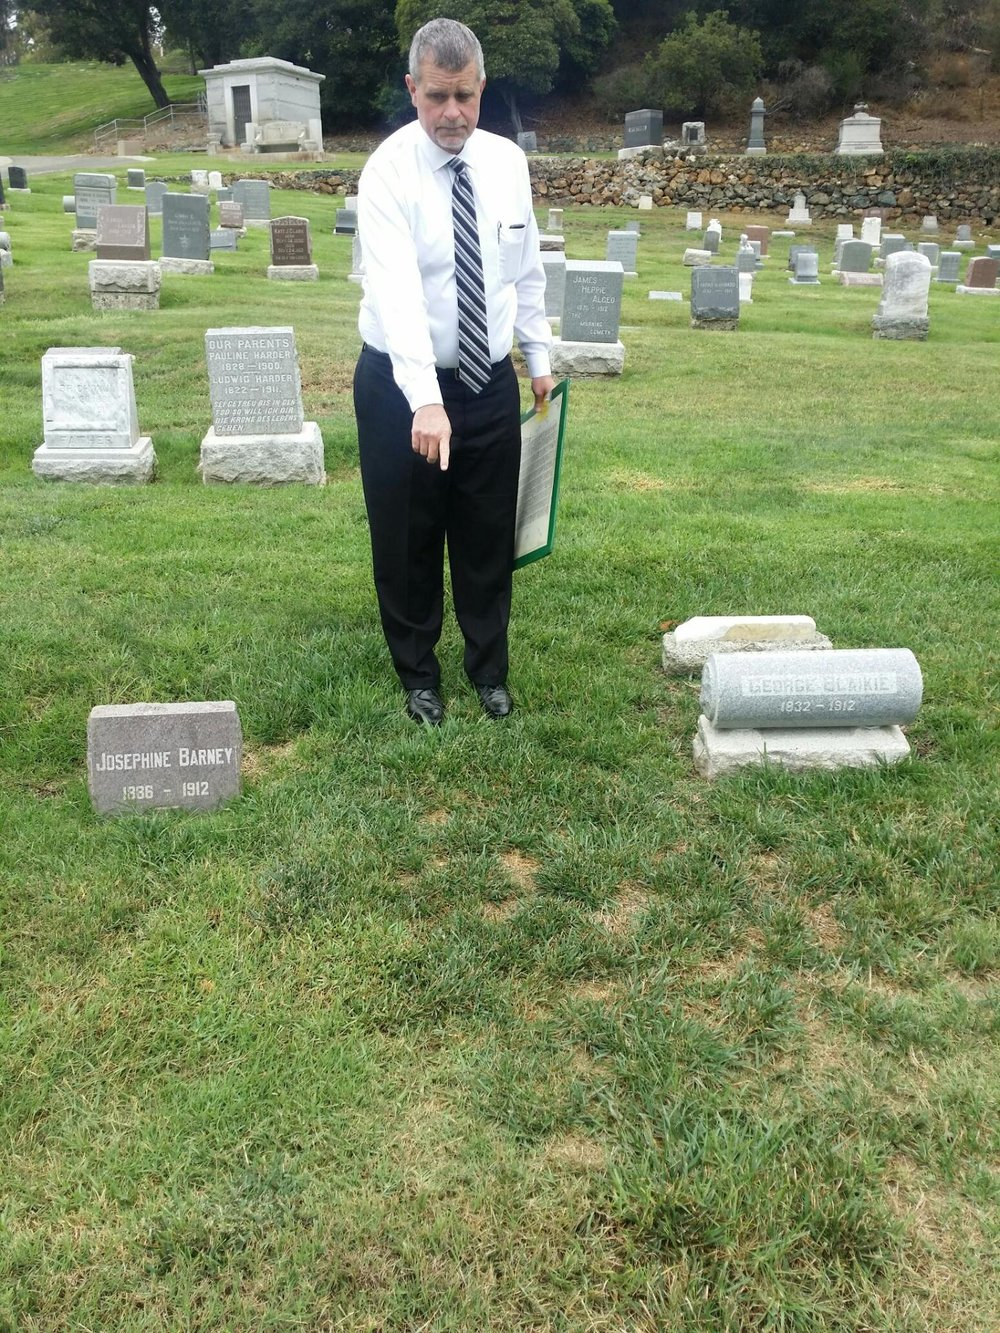 Scott Pennington, t he General Manager of Sunset View cemetery in El Cerrito, points to the unmarked grave of Andrew W. Lindquist